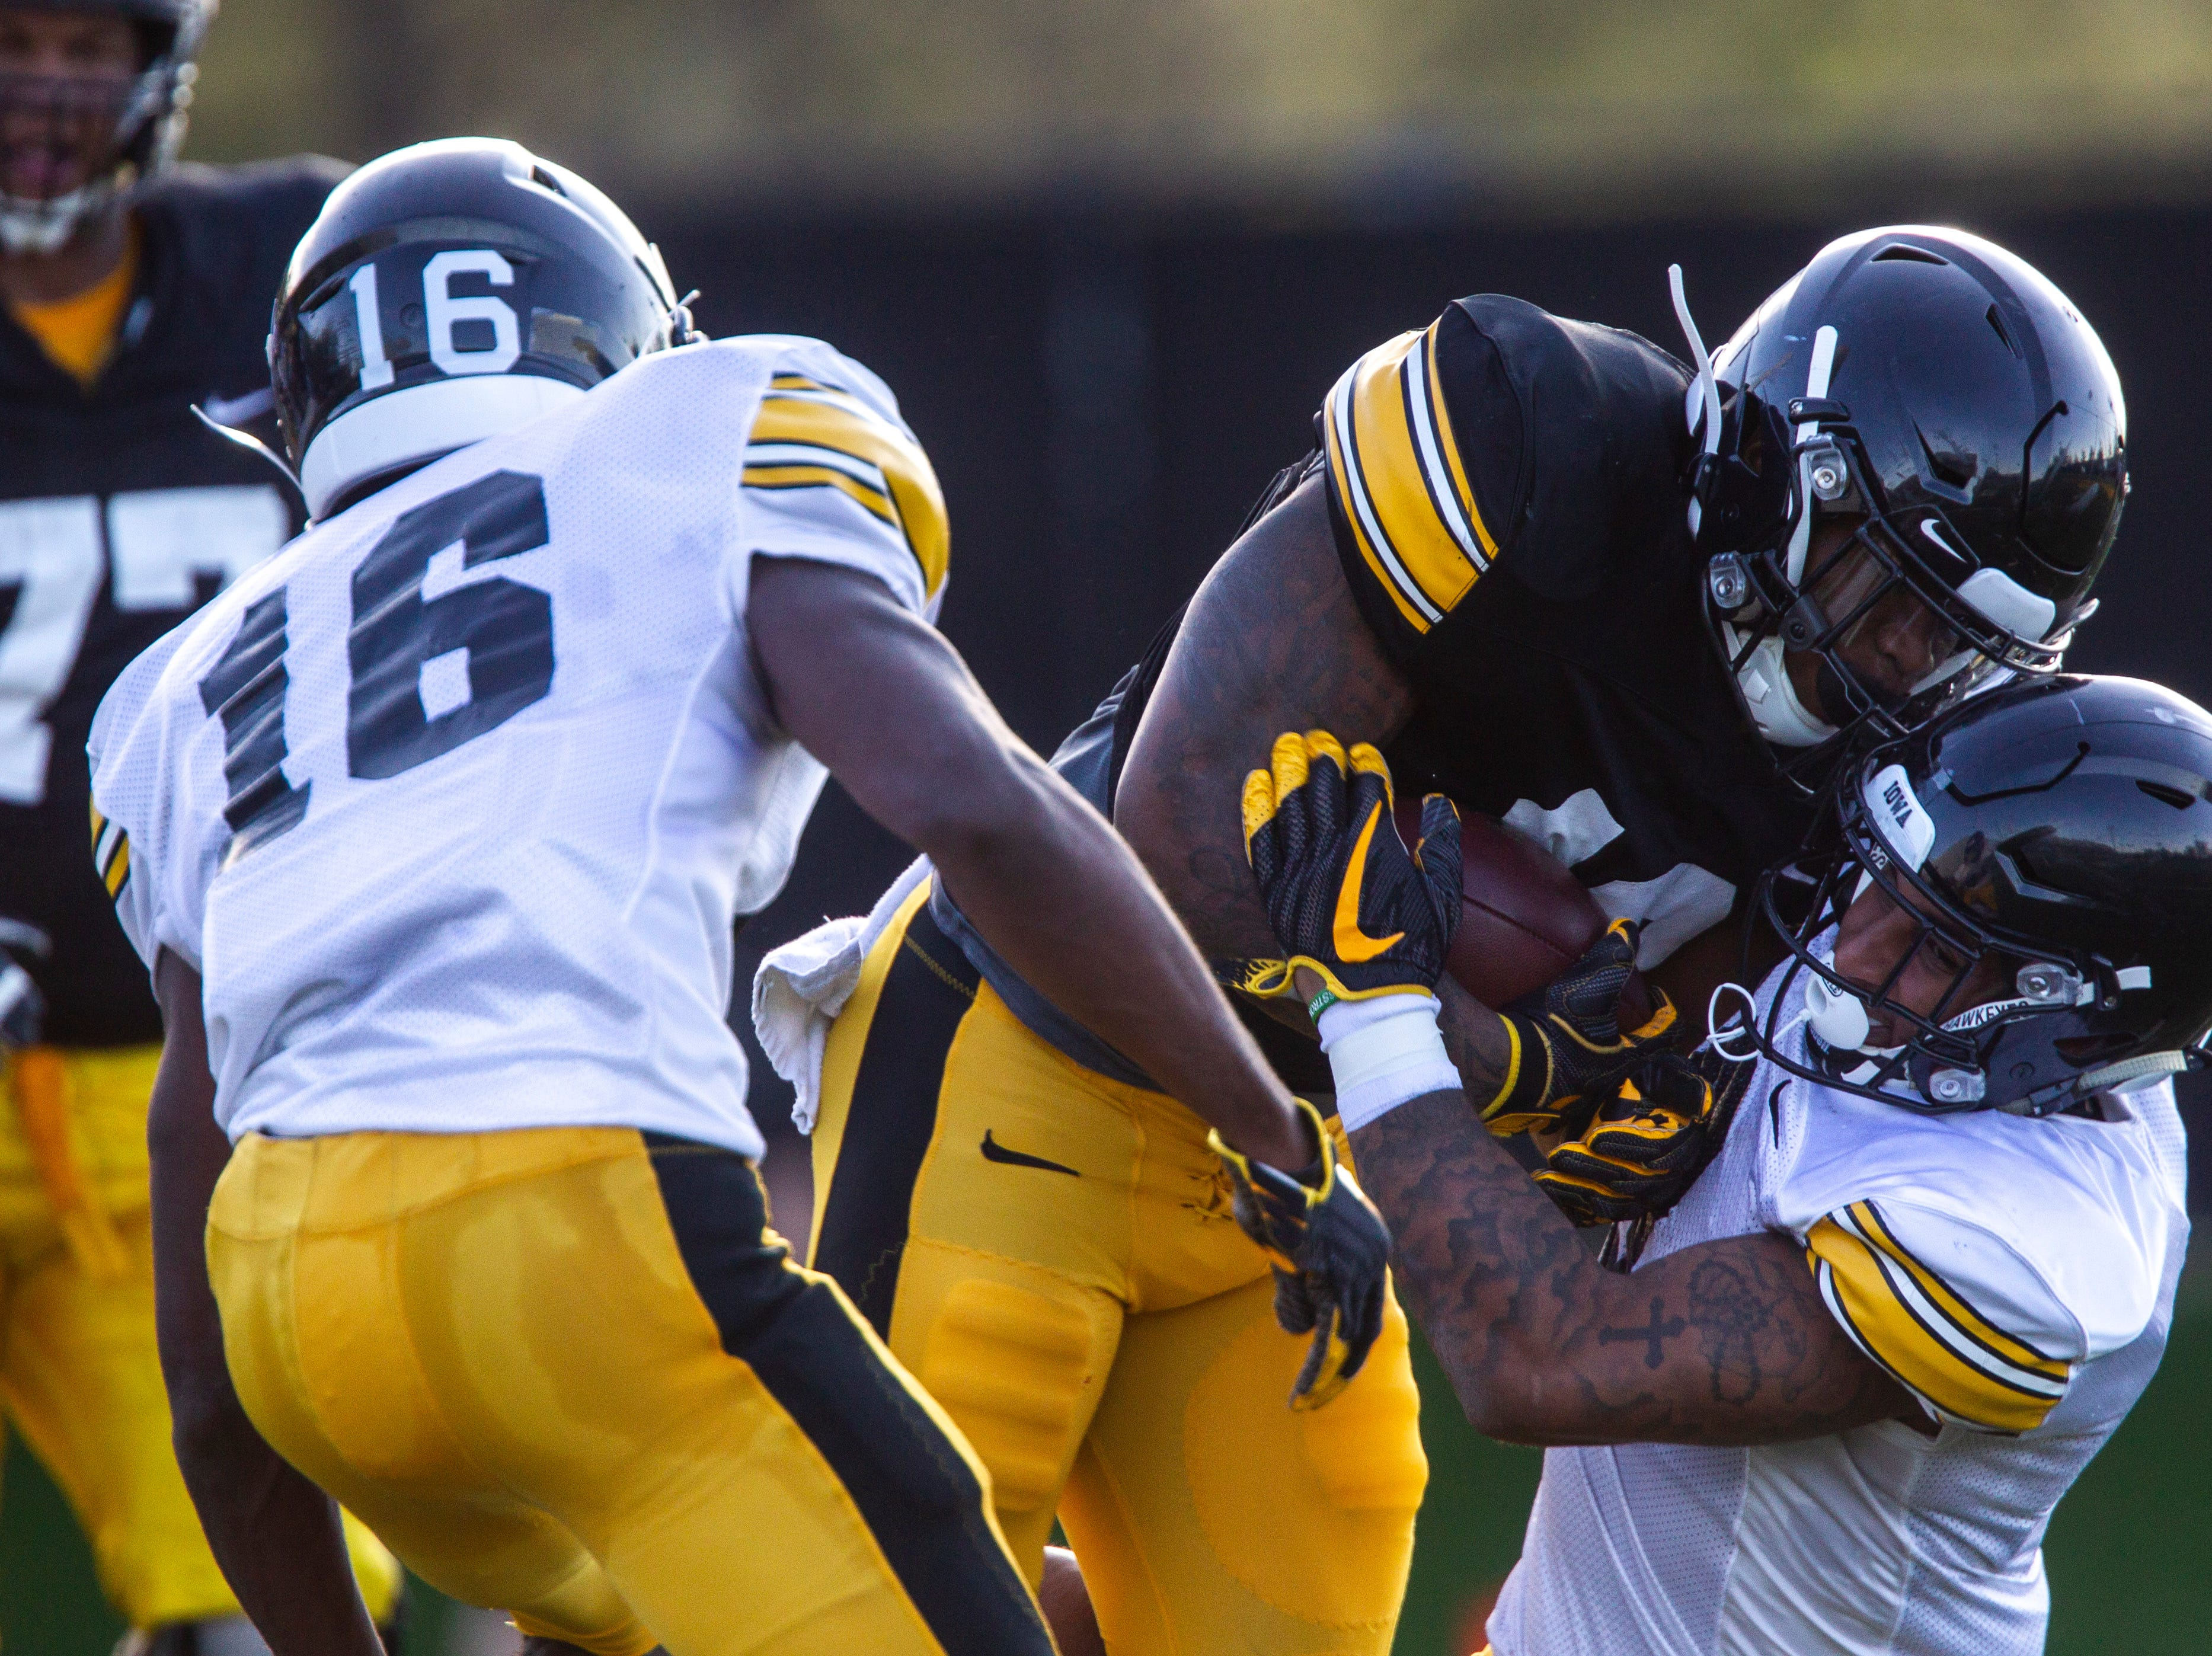 Iowa running back Mekhi Sargent (10) gets tackled by defensive back Geno Stone (9) during the final spring football practice, Friday, April 26, 2019, at the University of Iowa outdoor practice facility in Iowa City, Iowa.